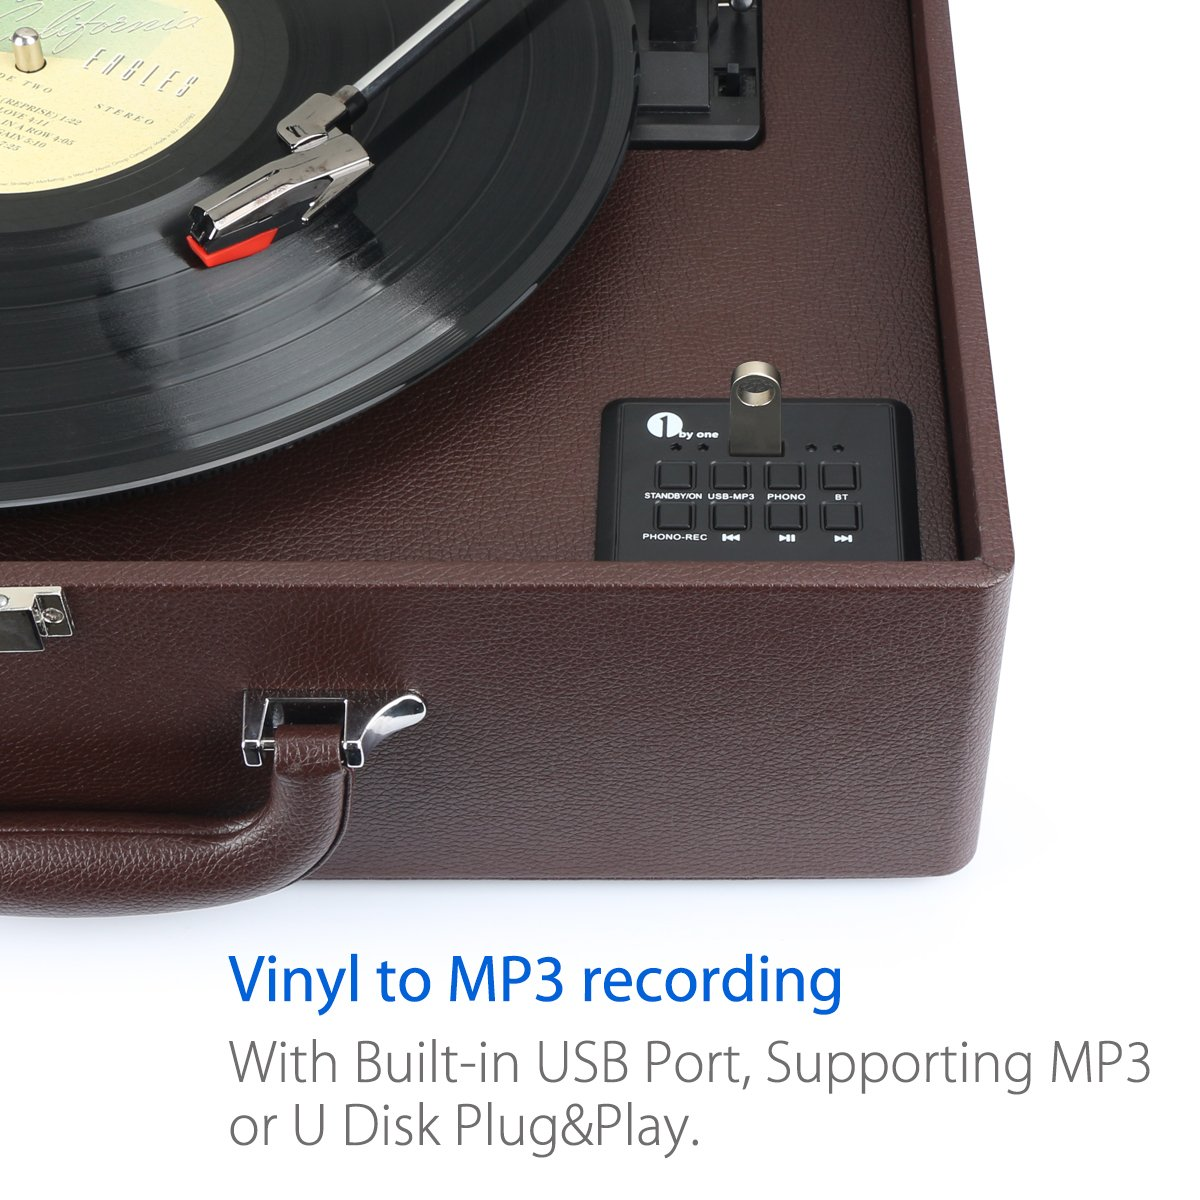 Bluetooth Support and Vinyl-to-MP3 Recording Belt Driven Record Player 1byone Suit-case Style Turntable with Speaker Black